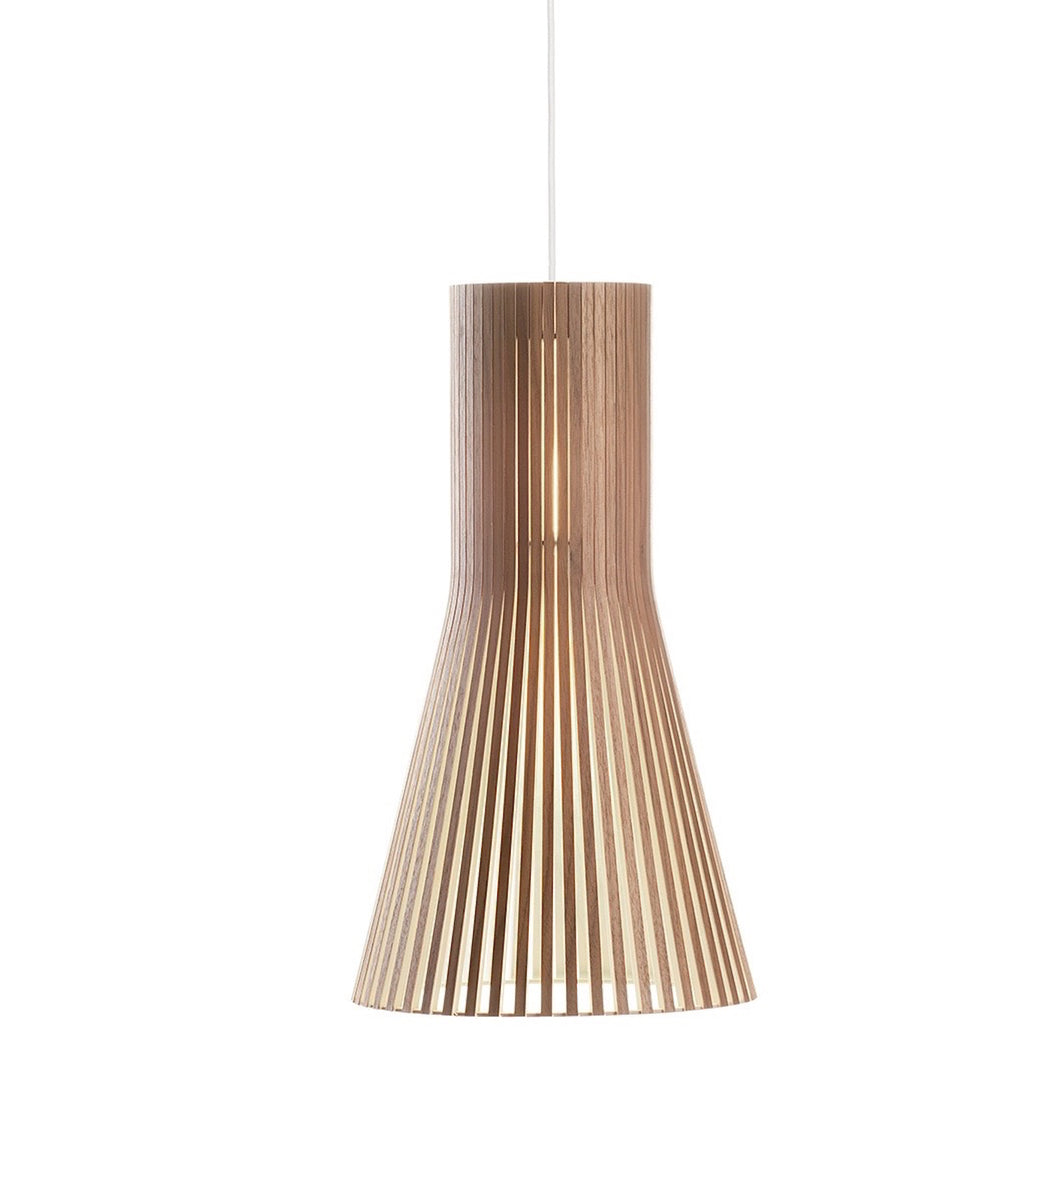 Ceiling light Secto 4201 Walnut Finland 1